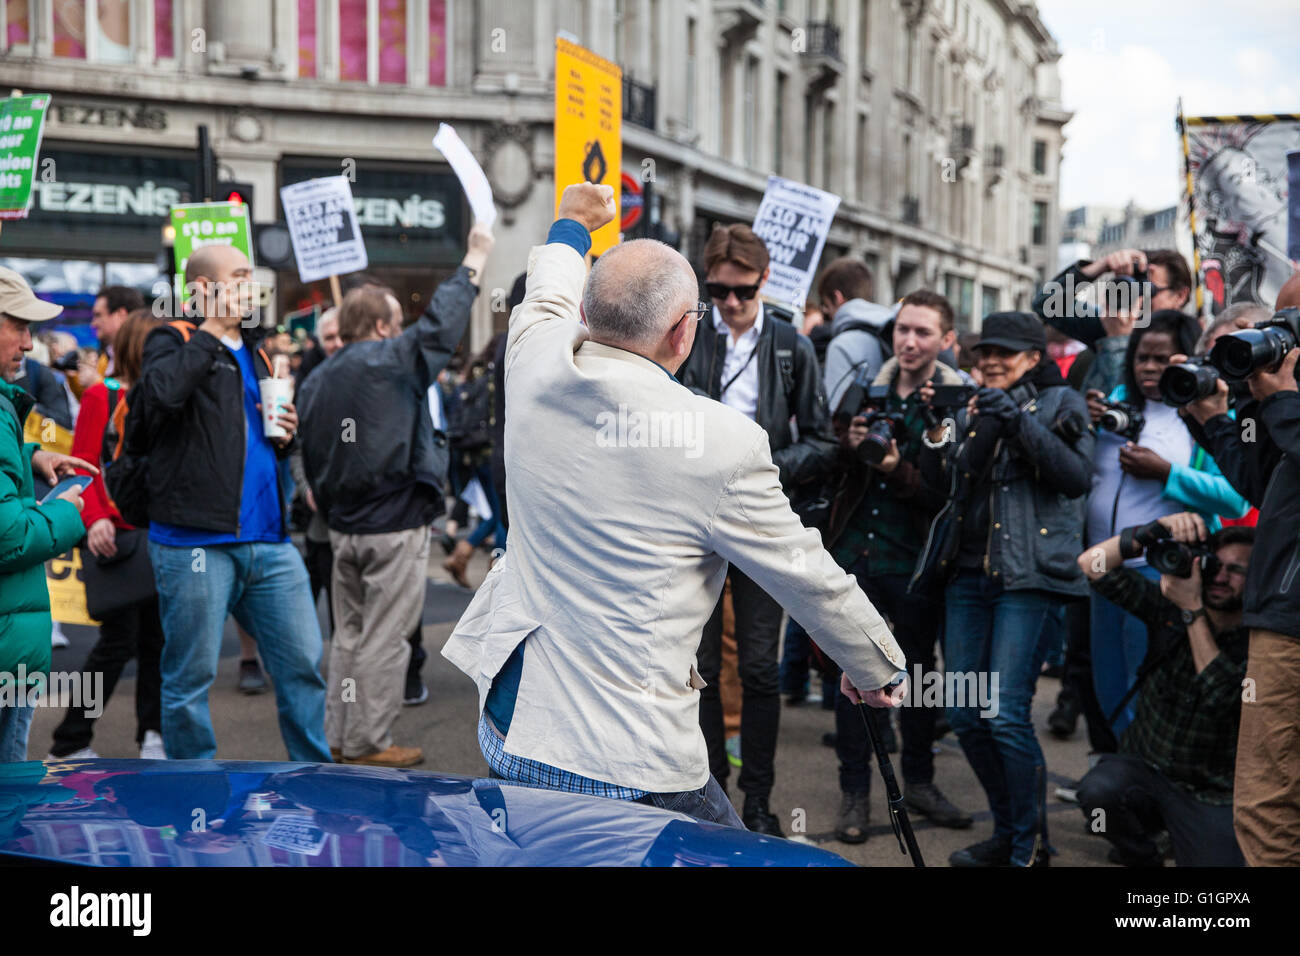 London, UK. 14th May, 2016. Ian Bone of Class War poses for a photo in Oxford Circus during a protest for a living - Stock Image